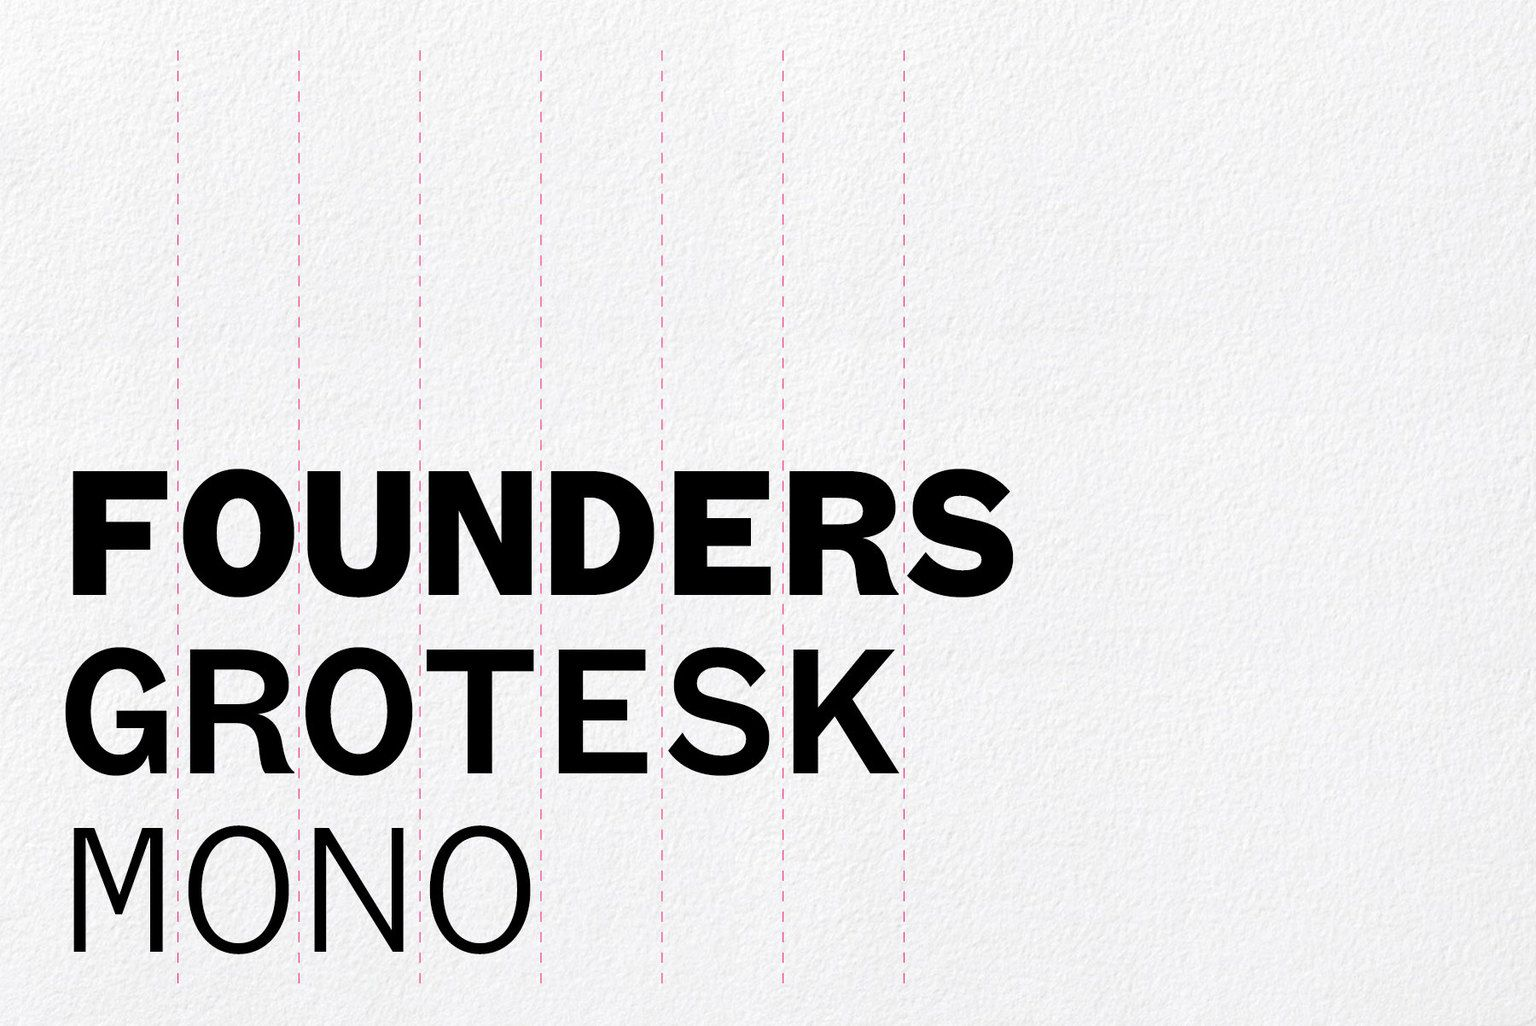 Founders Grotesk Mono, designed by Kris Sowersby of Klim